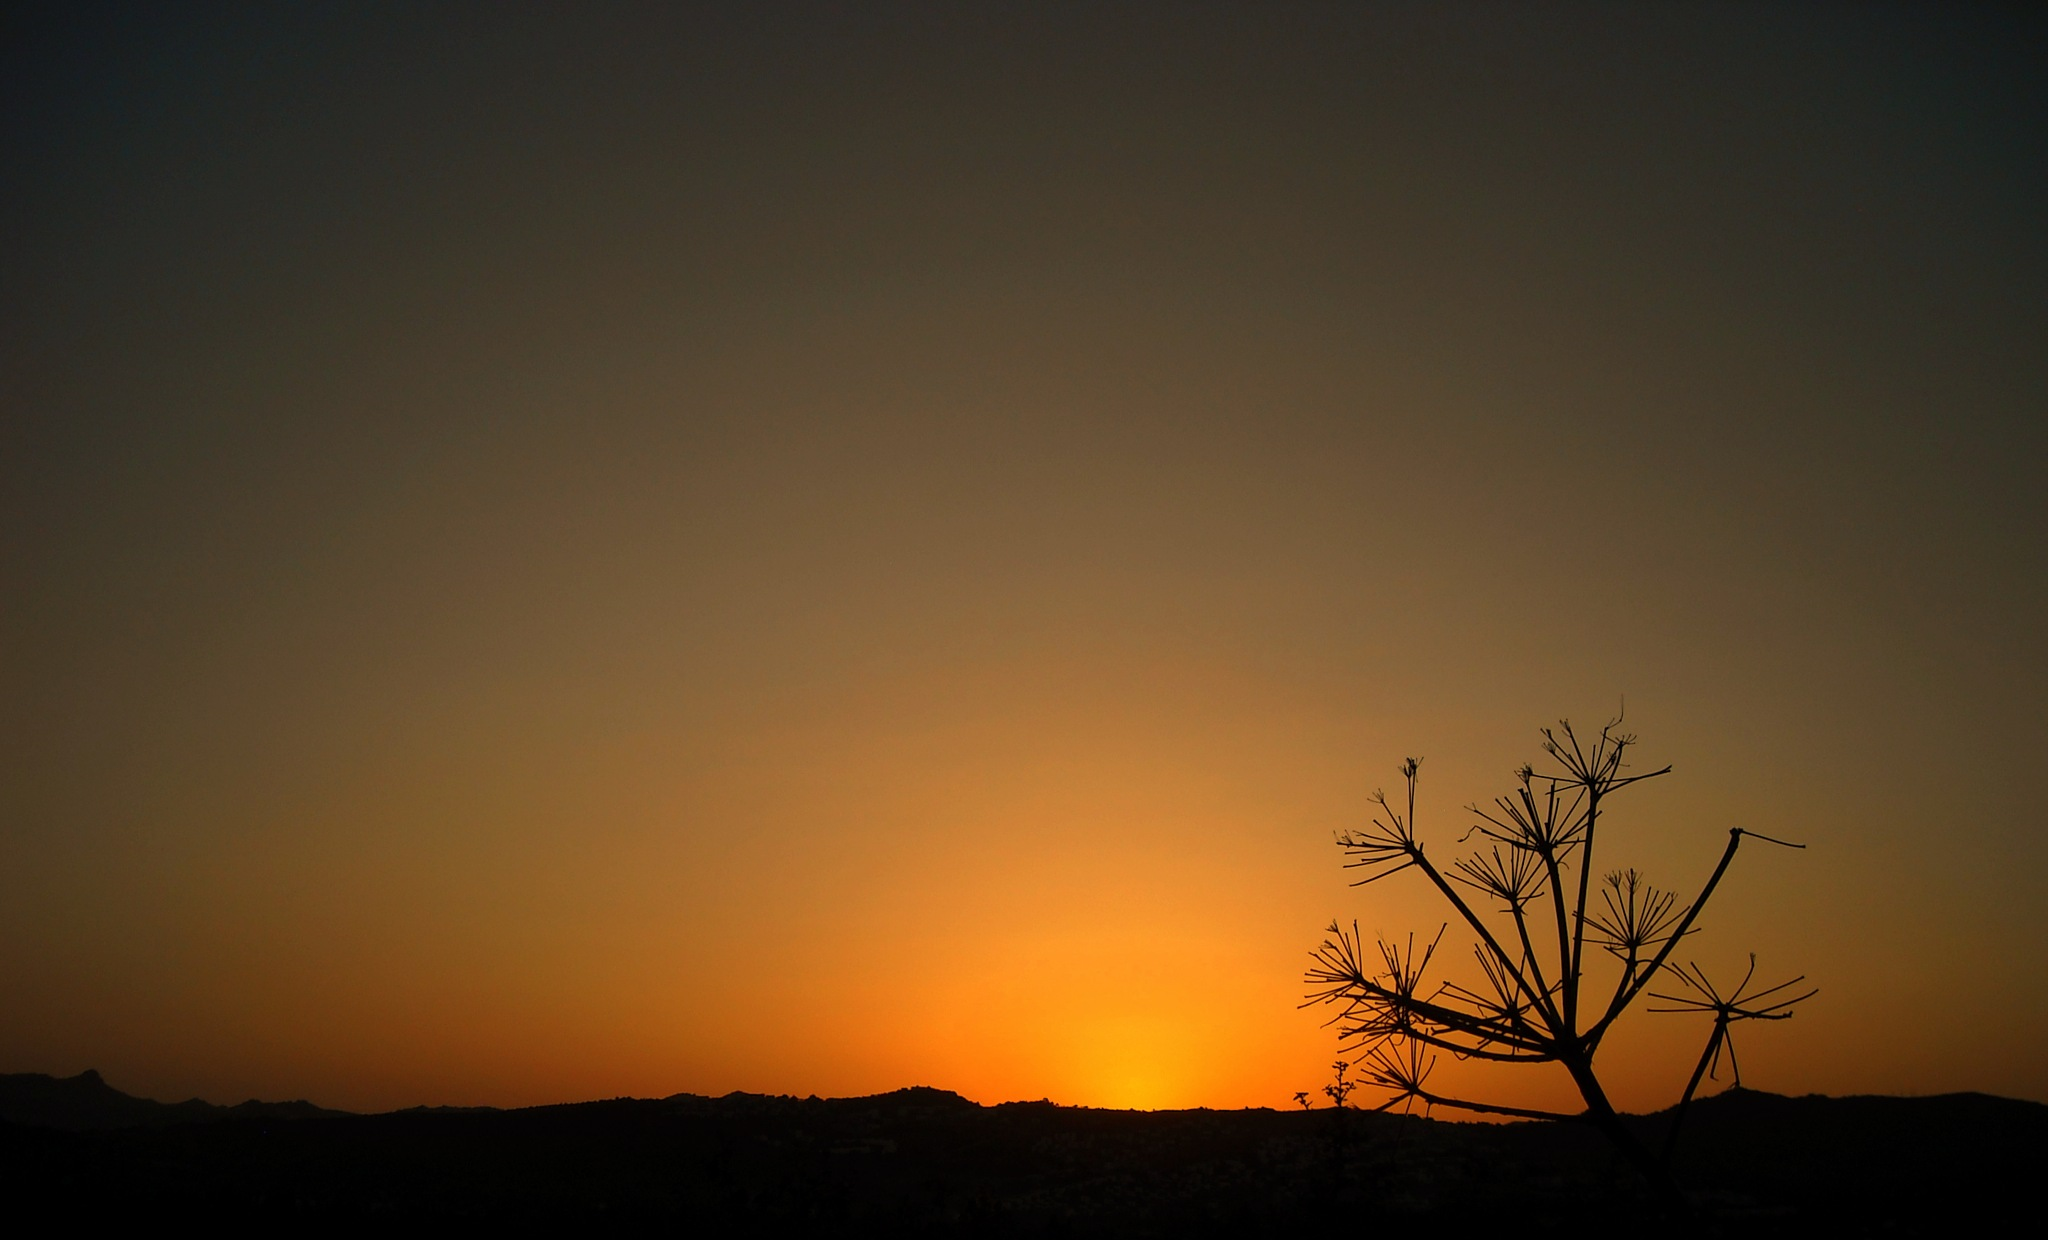 SILHOUETTES FROM BITEZ HILLS AT SUNSET by Akin Saner